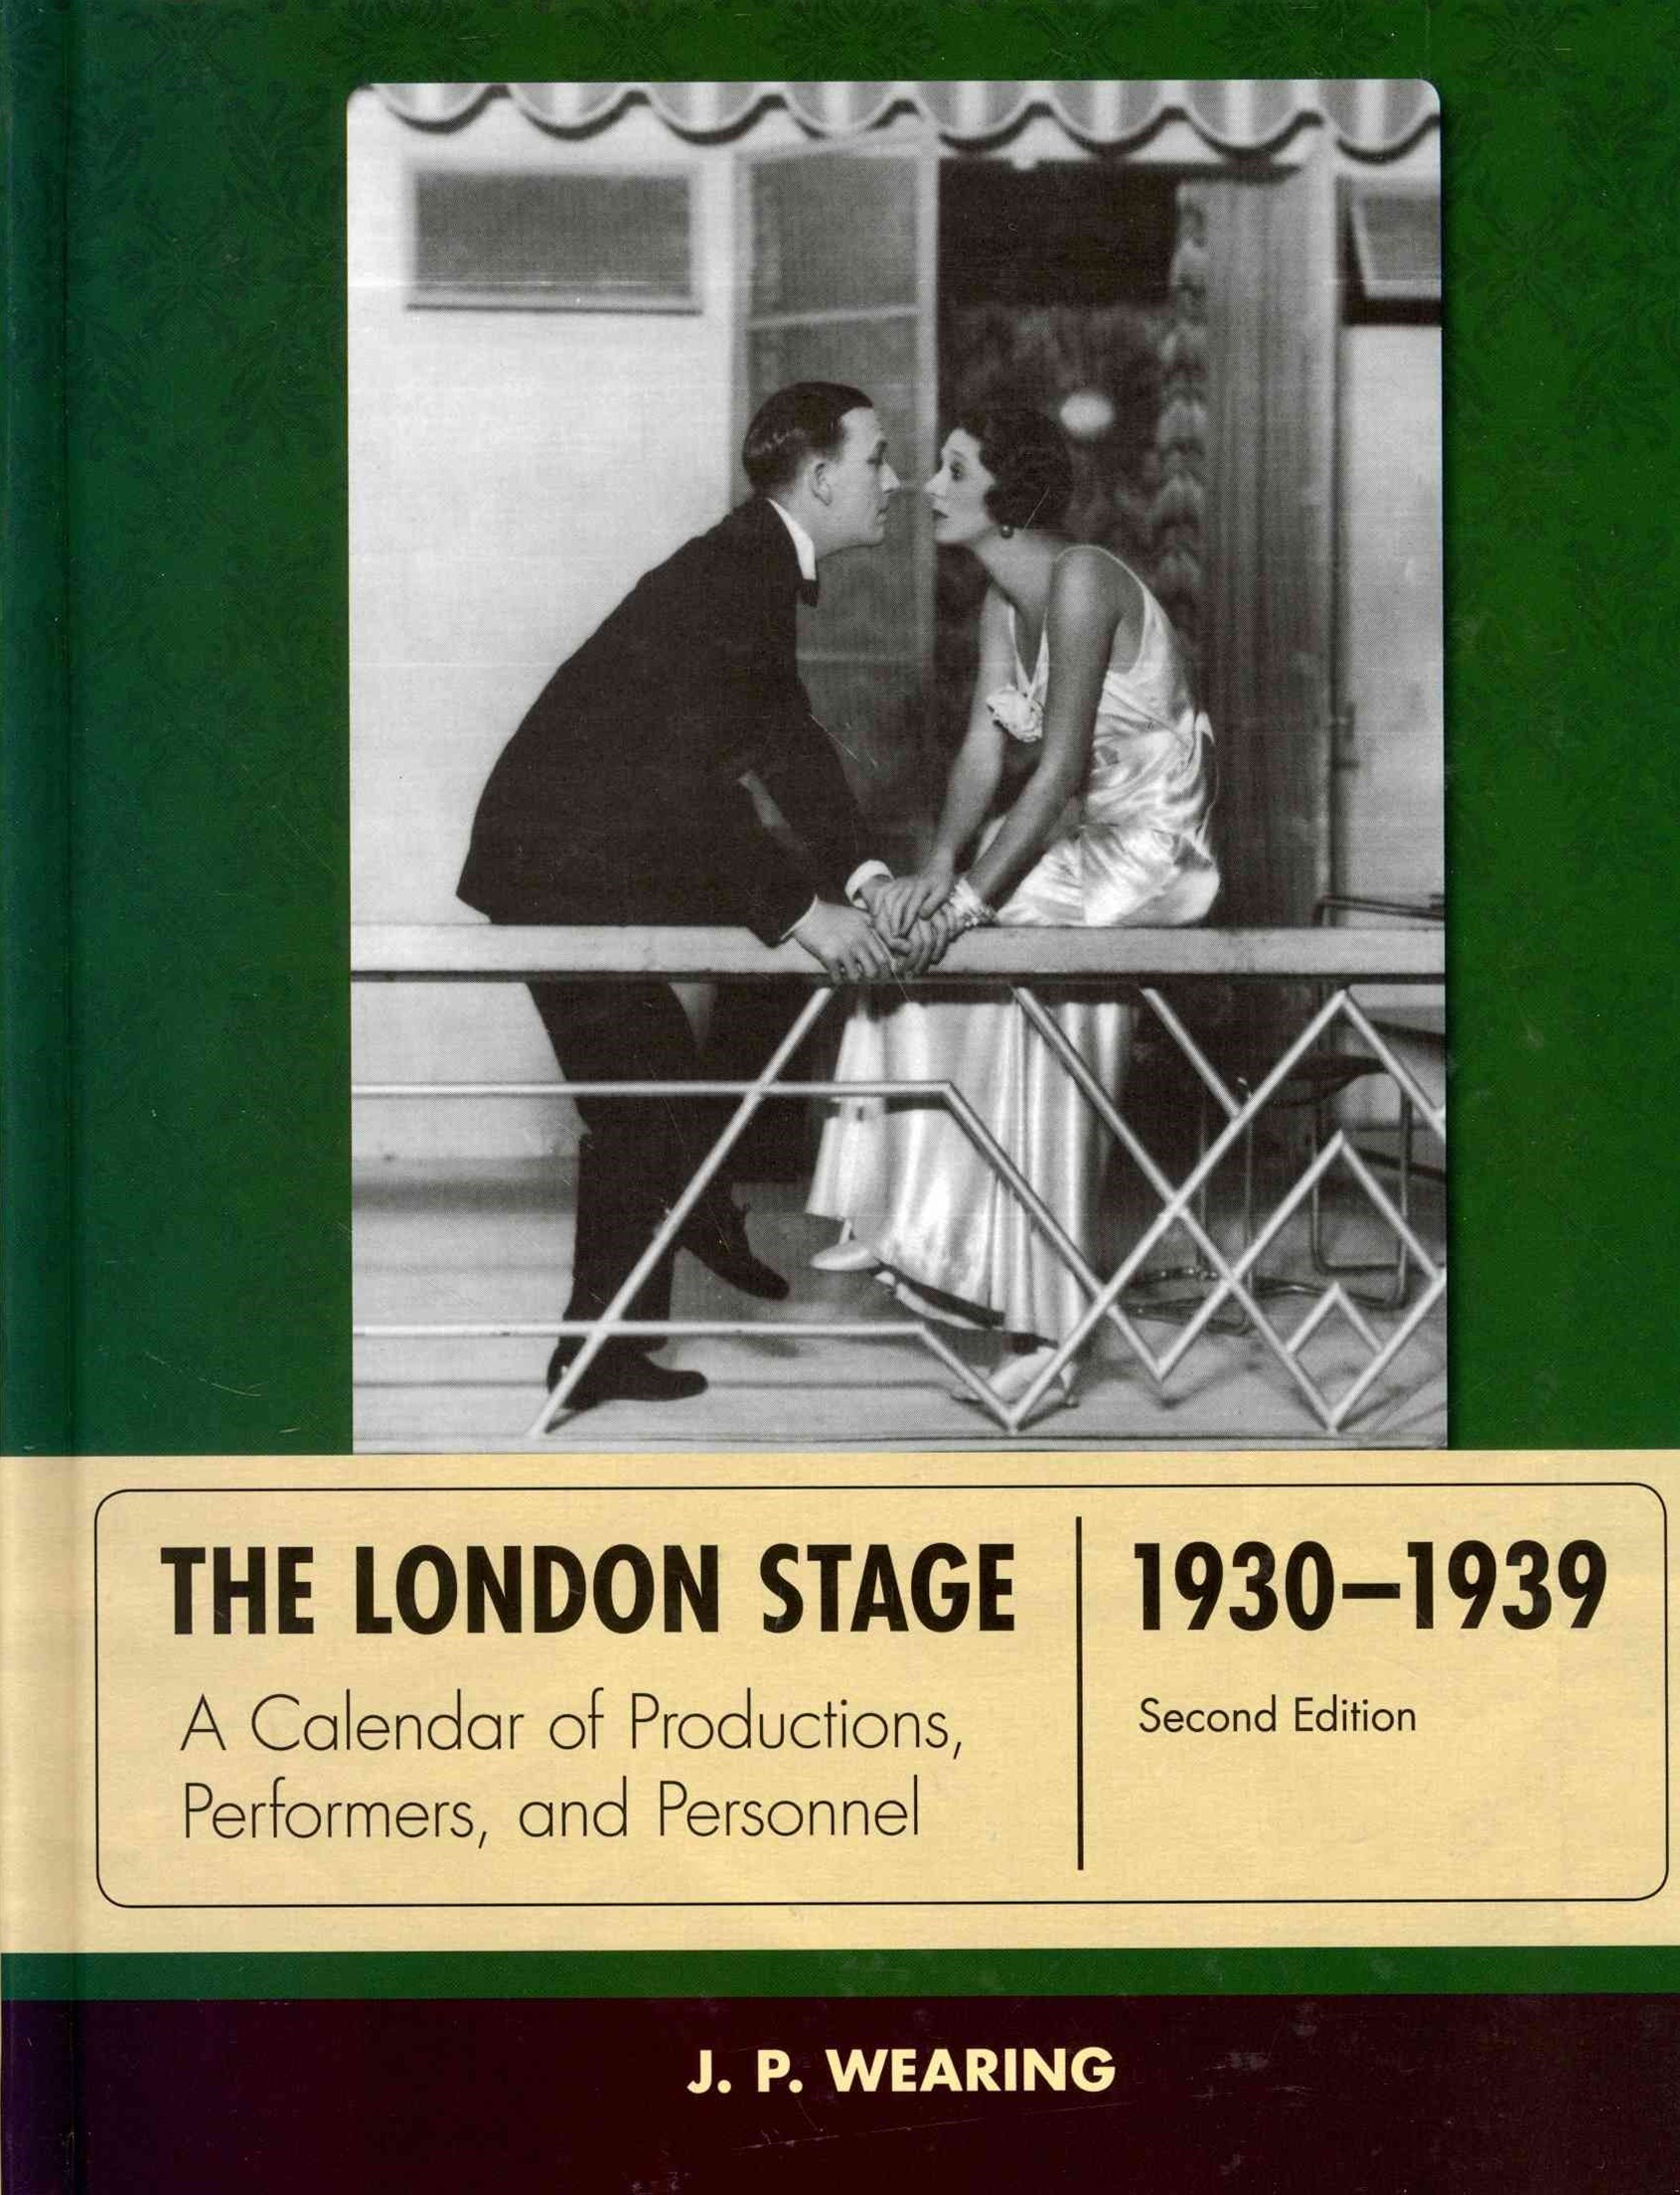 The London Stage, 1930-1939